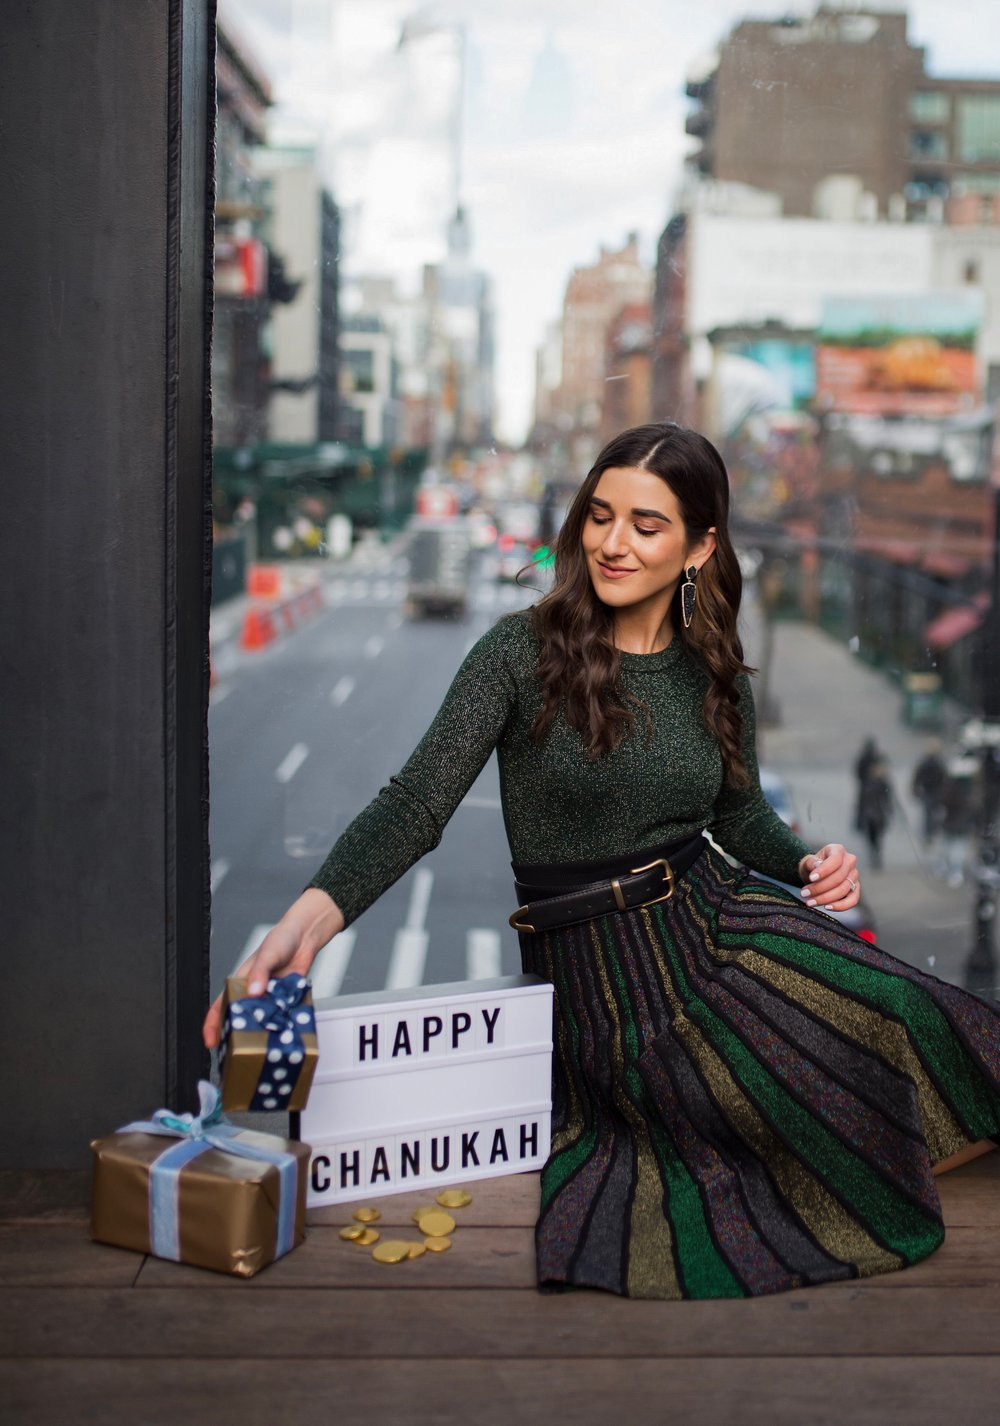 So You Wanna Talk About Diversity Don't forget me Esther Santer Fashion Blog NYC Street Style Blogger Outfit OOTD Trendy Shopping Miri Couture Laurel Creative Sparkles Glitter Holiday Midi Skirt Jewish Chanukah Green Long Sleeve Top Glitter Shirt 2018.jpg